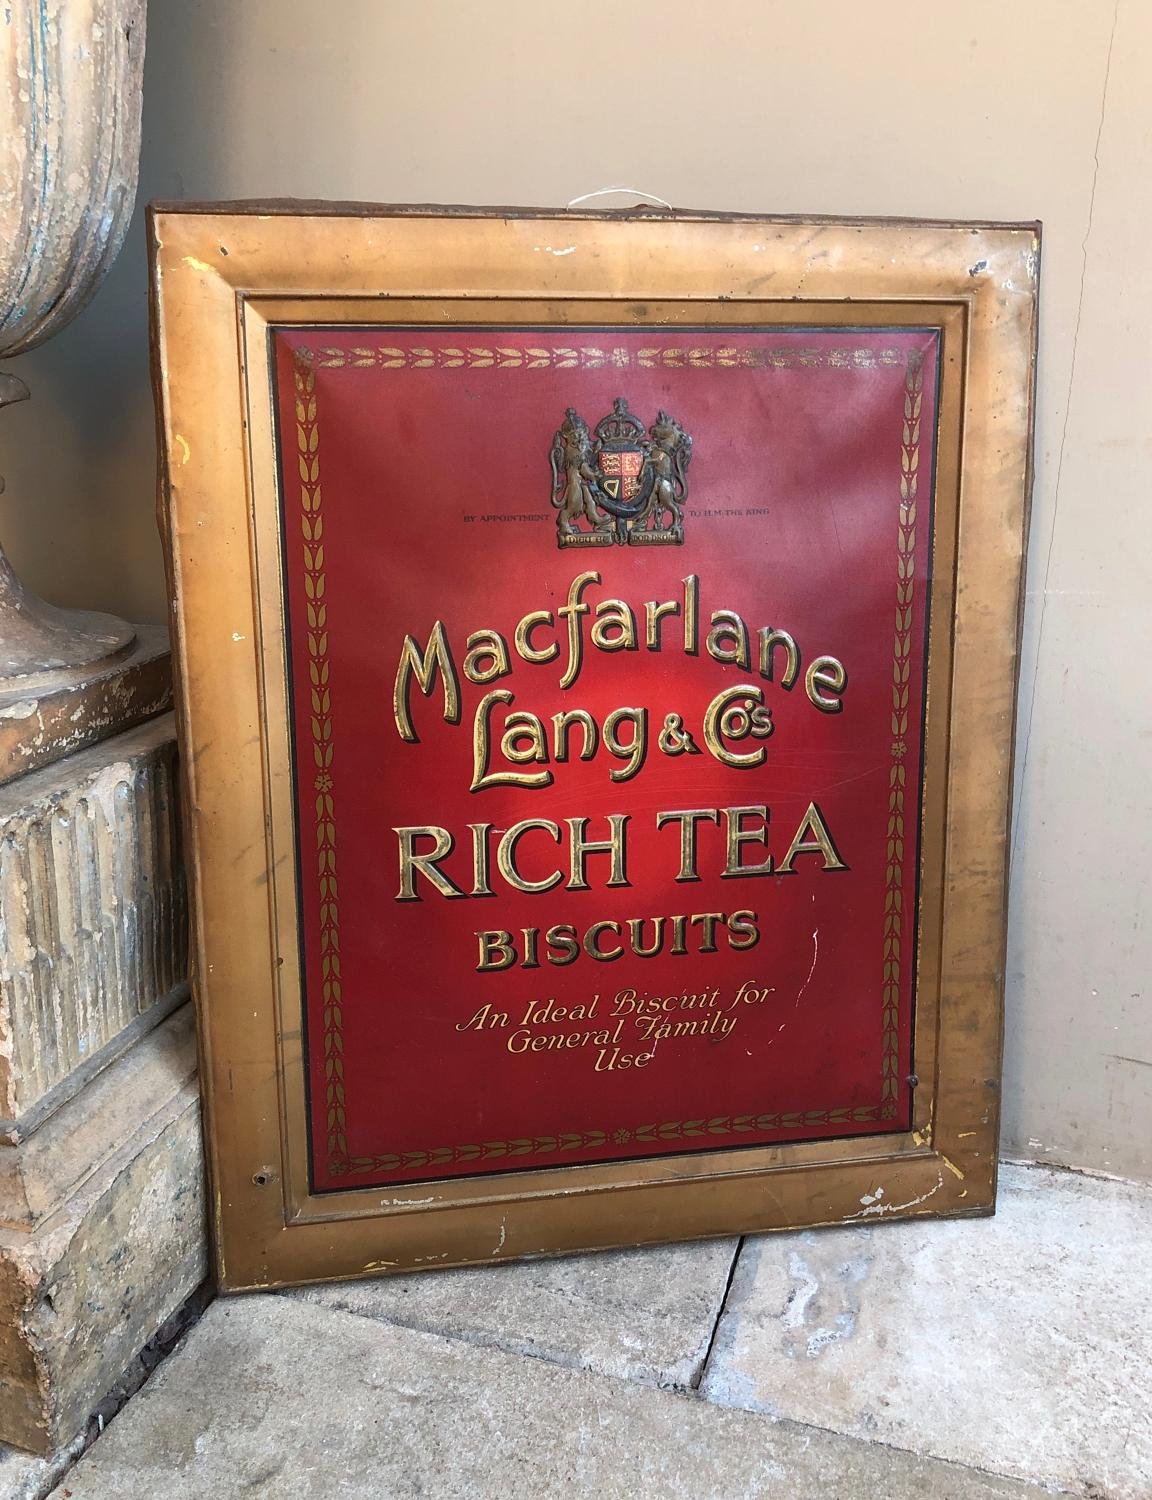 1930s Tin Advertising Sign - Macfarlane Lang & Co Biscuits